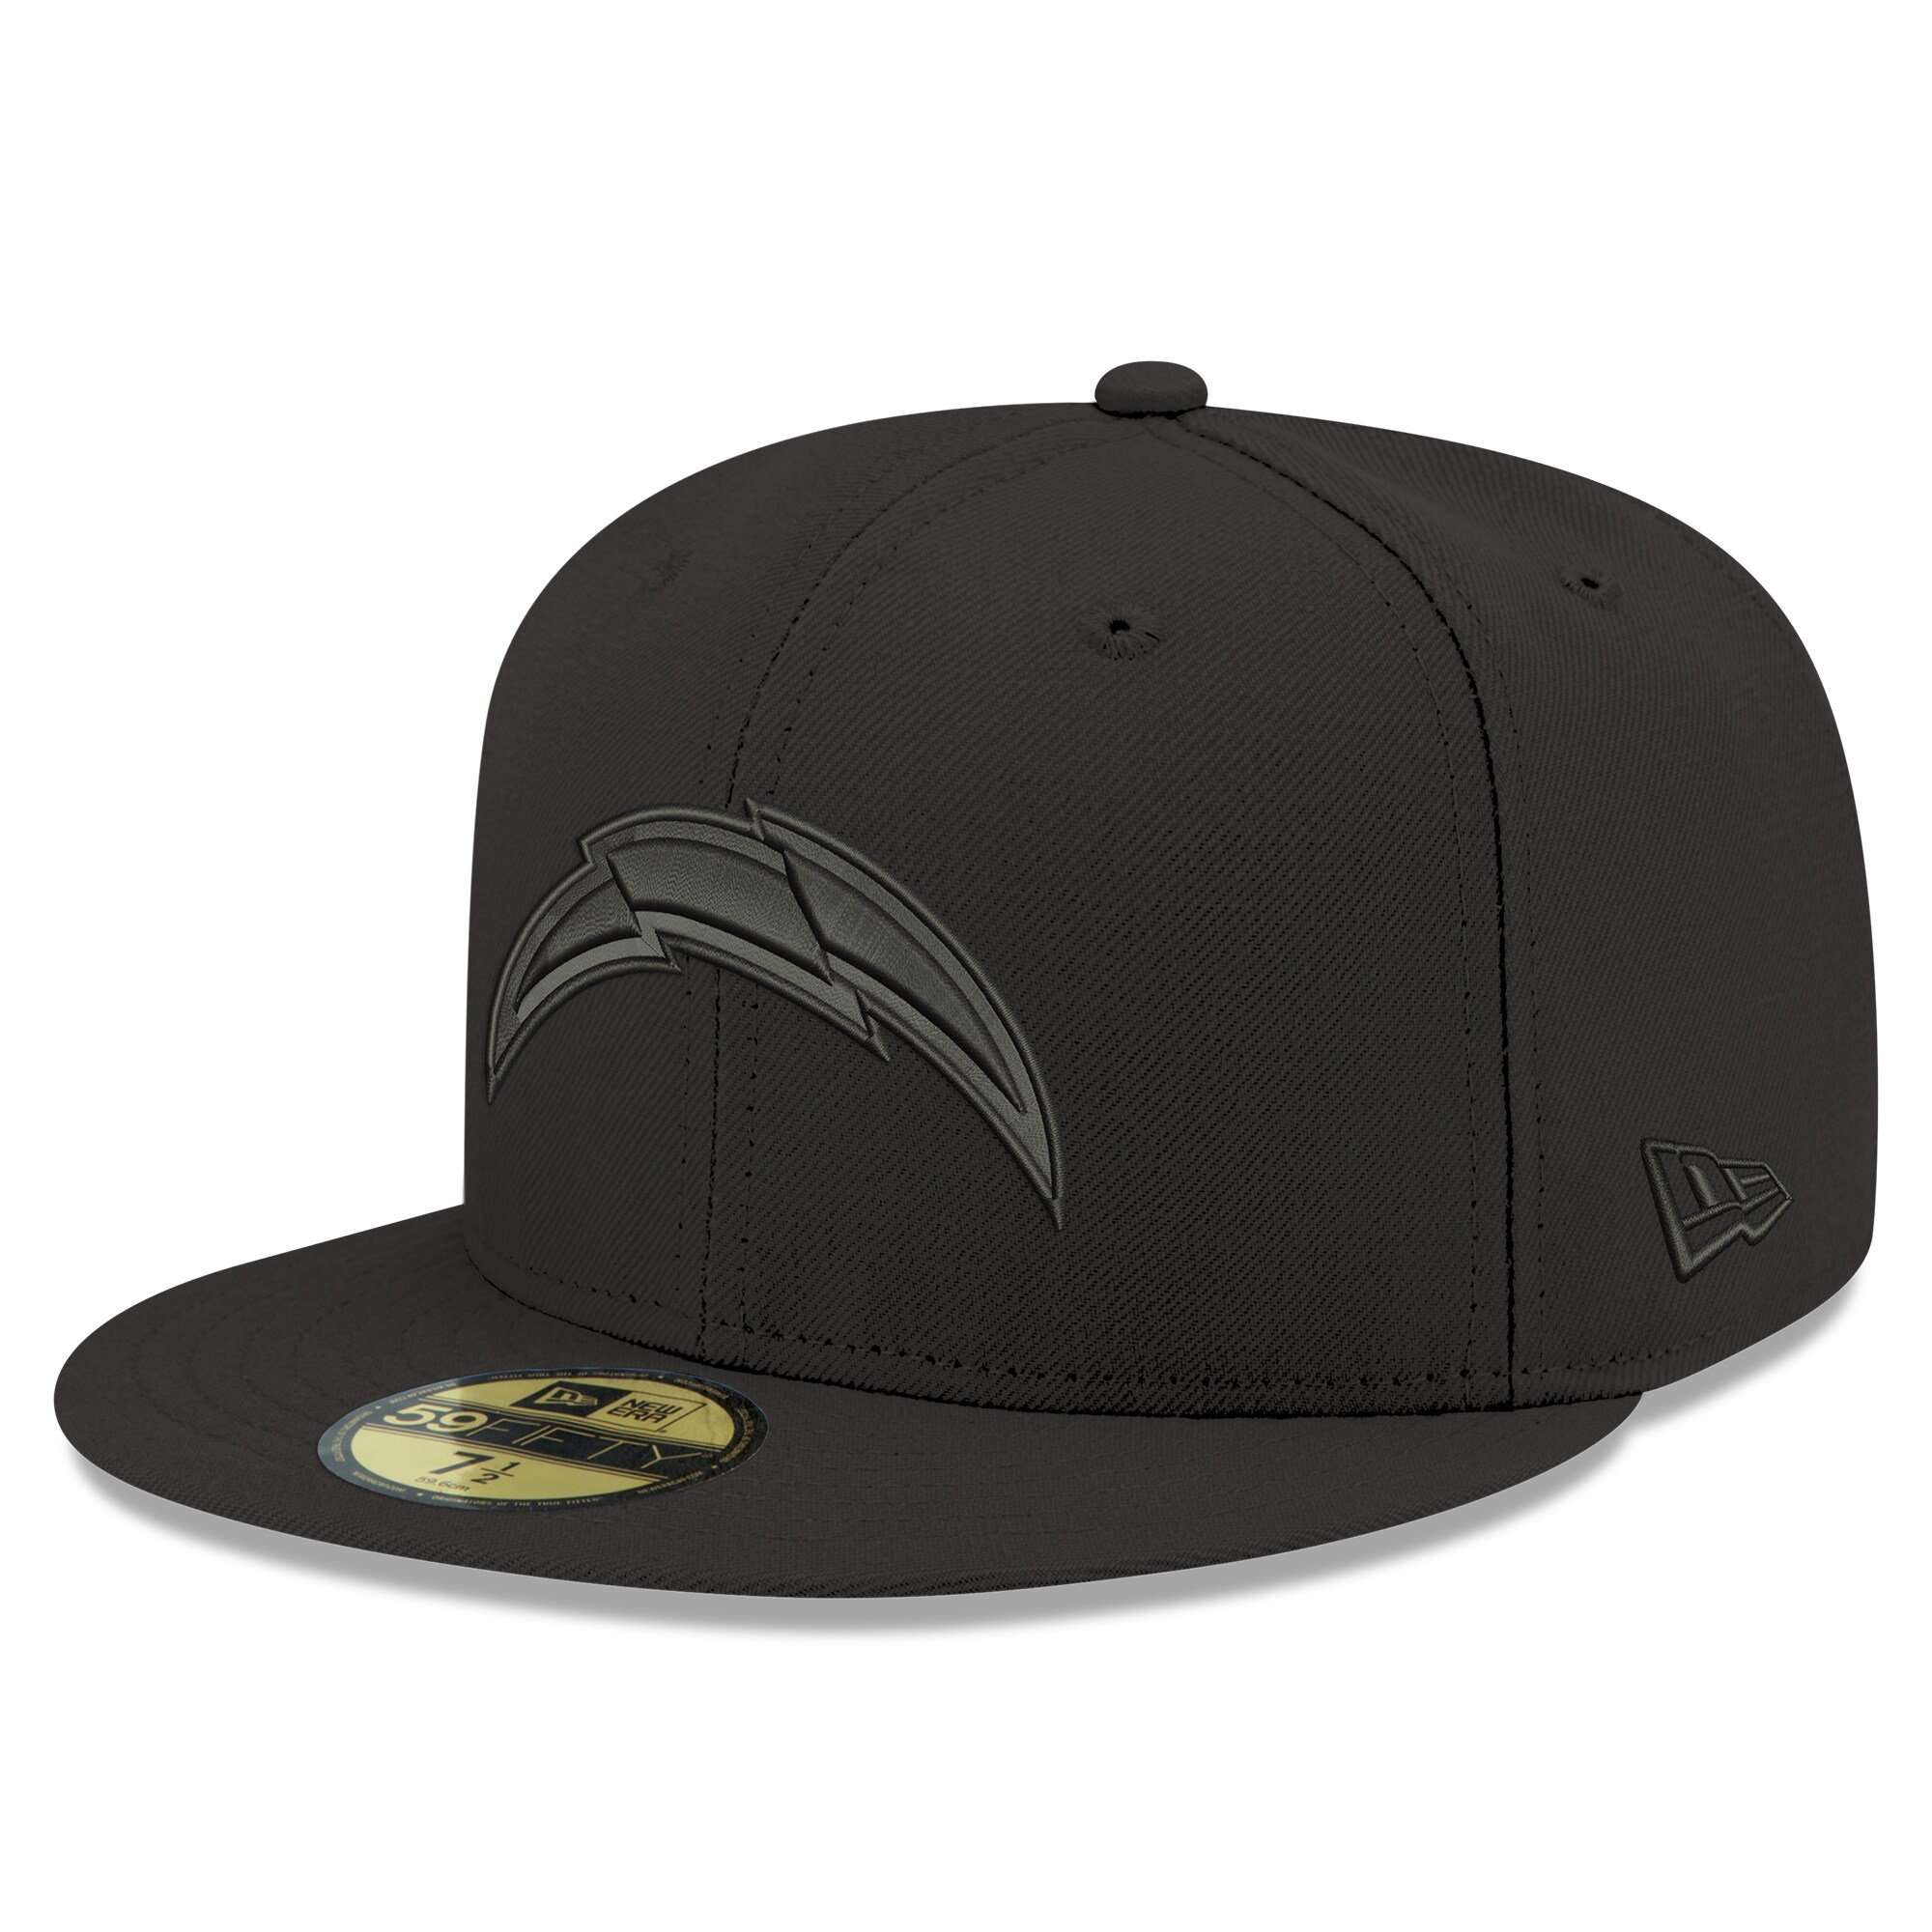 Los Angeles Chargers New Era Black on Black 59FIFTY Fitted Hat - Black